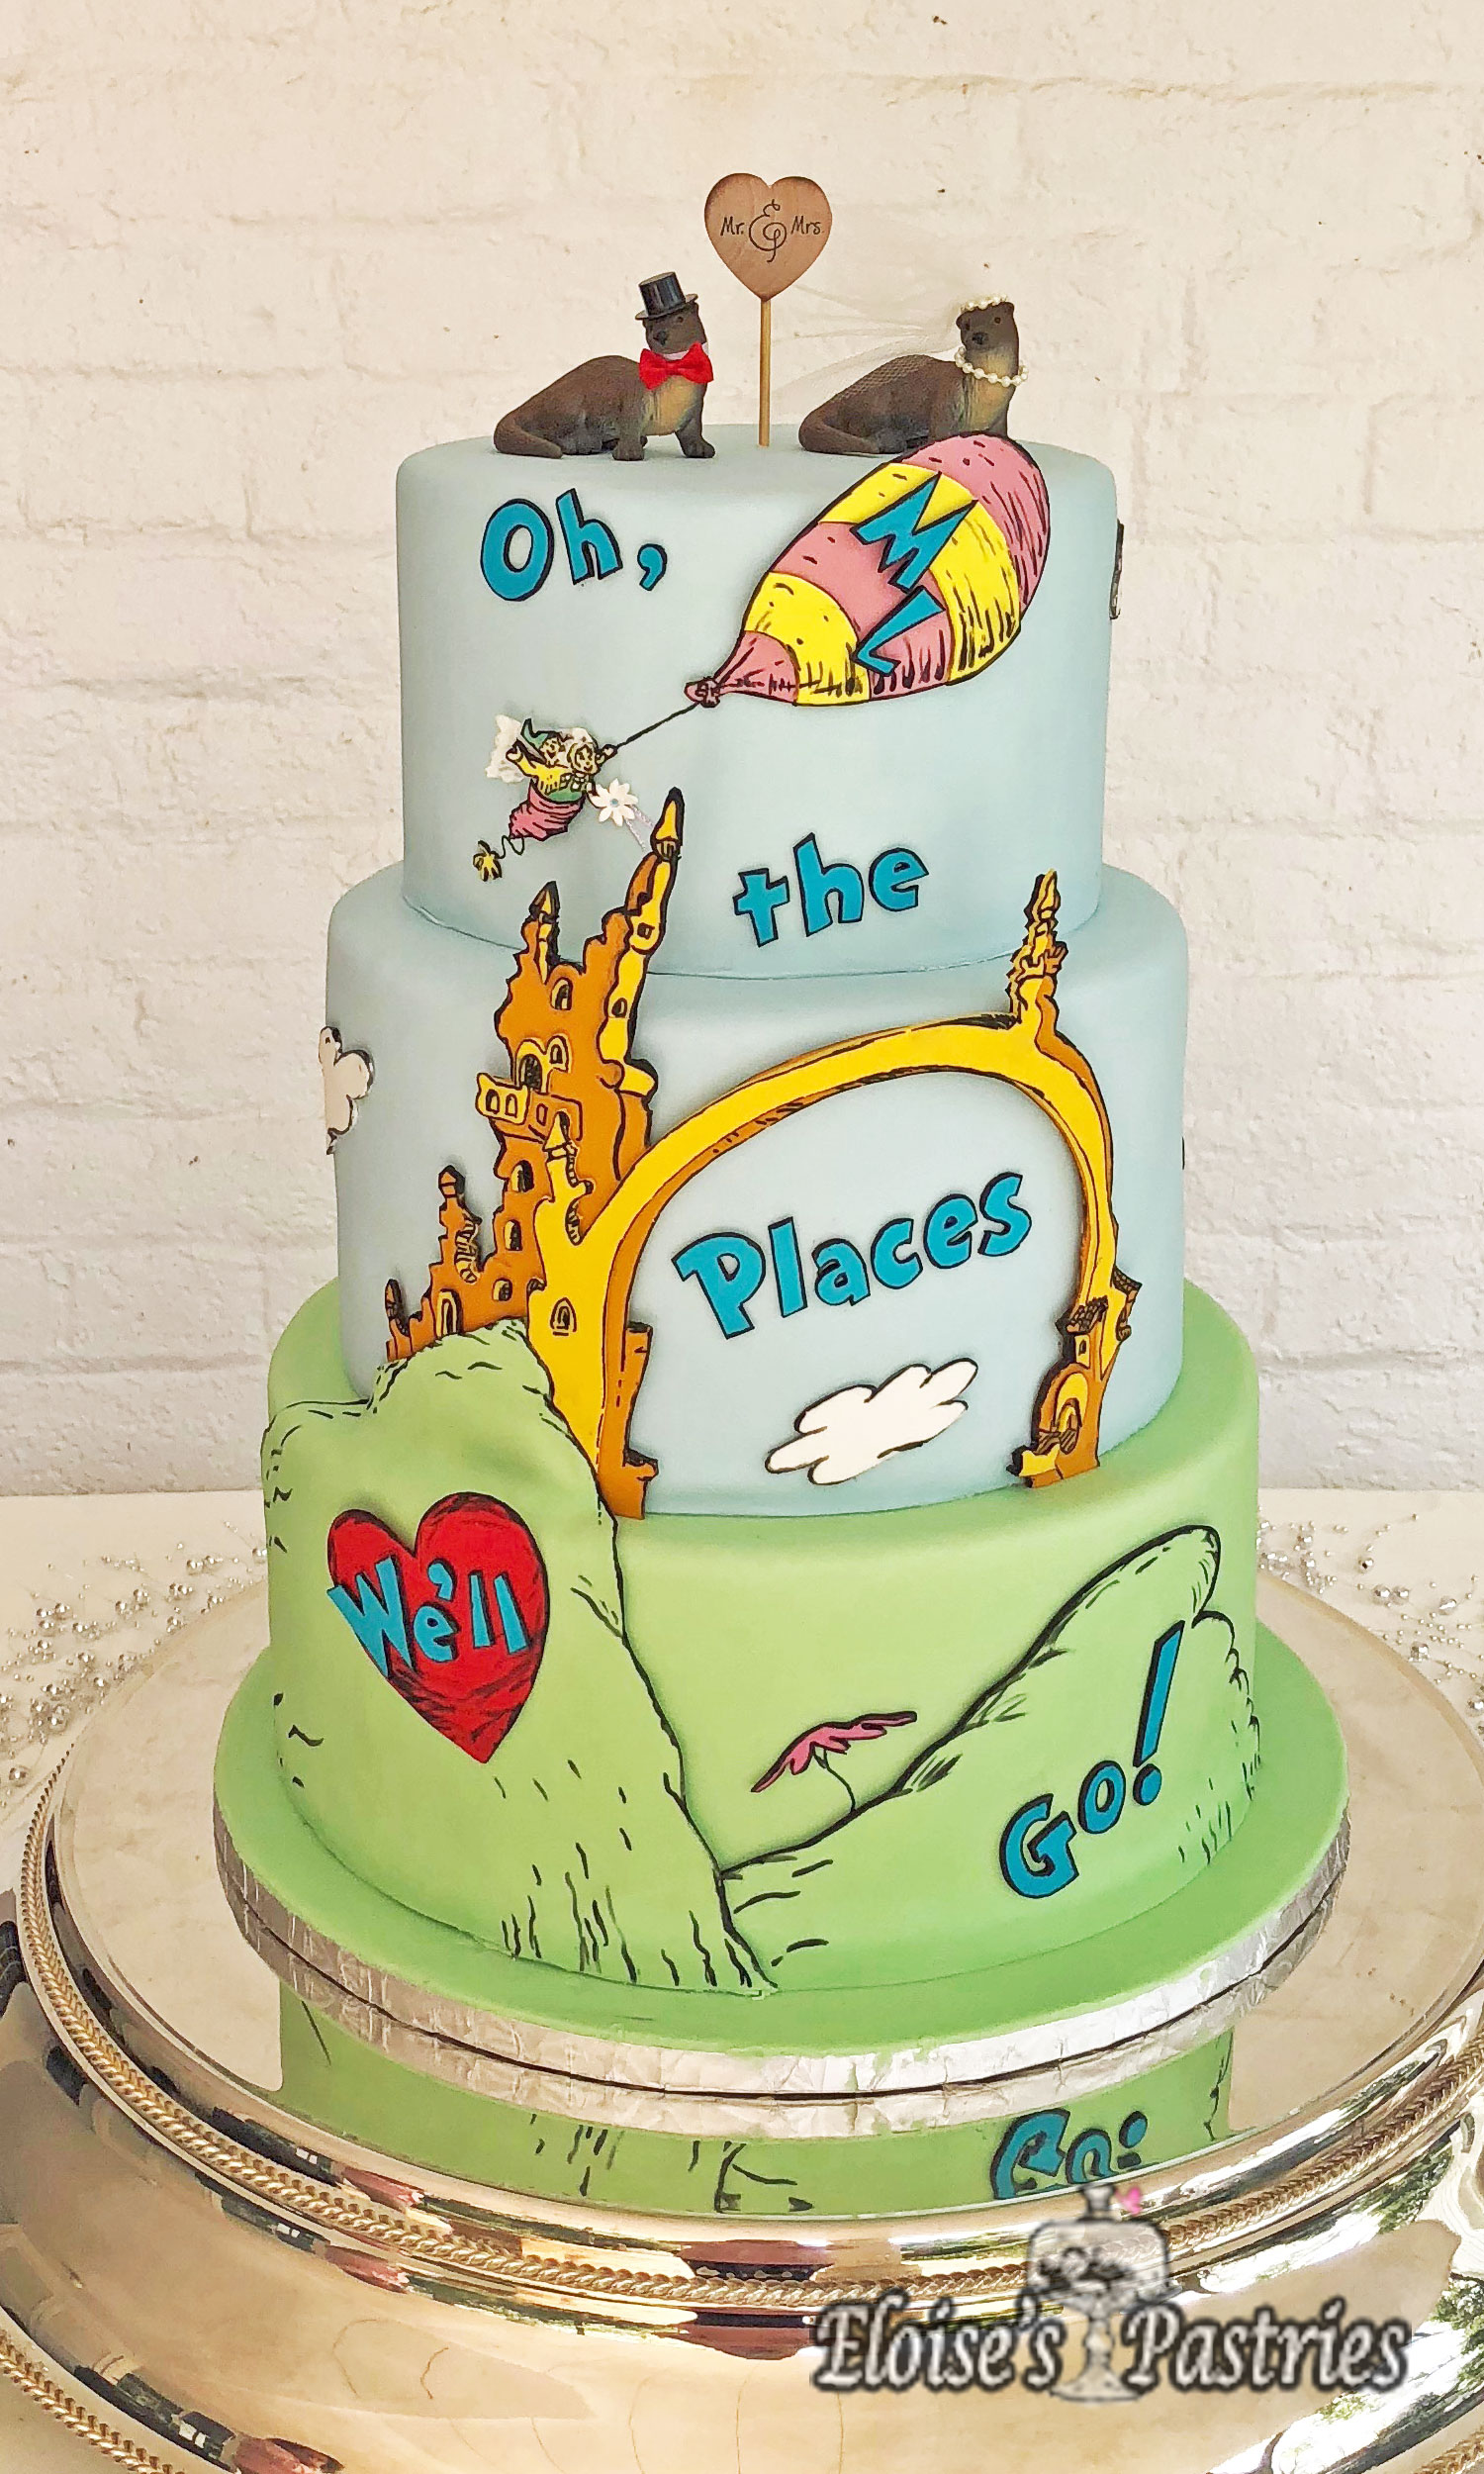 Oh The Places You'll Go Wedding Cake - Custom Cakes